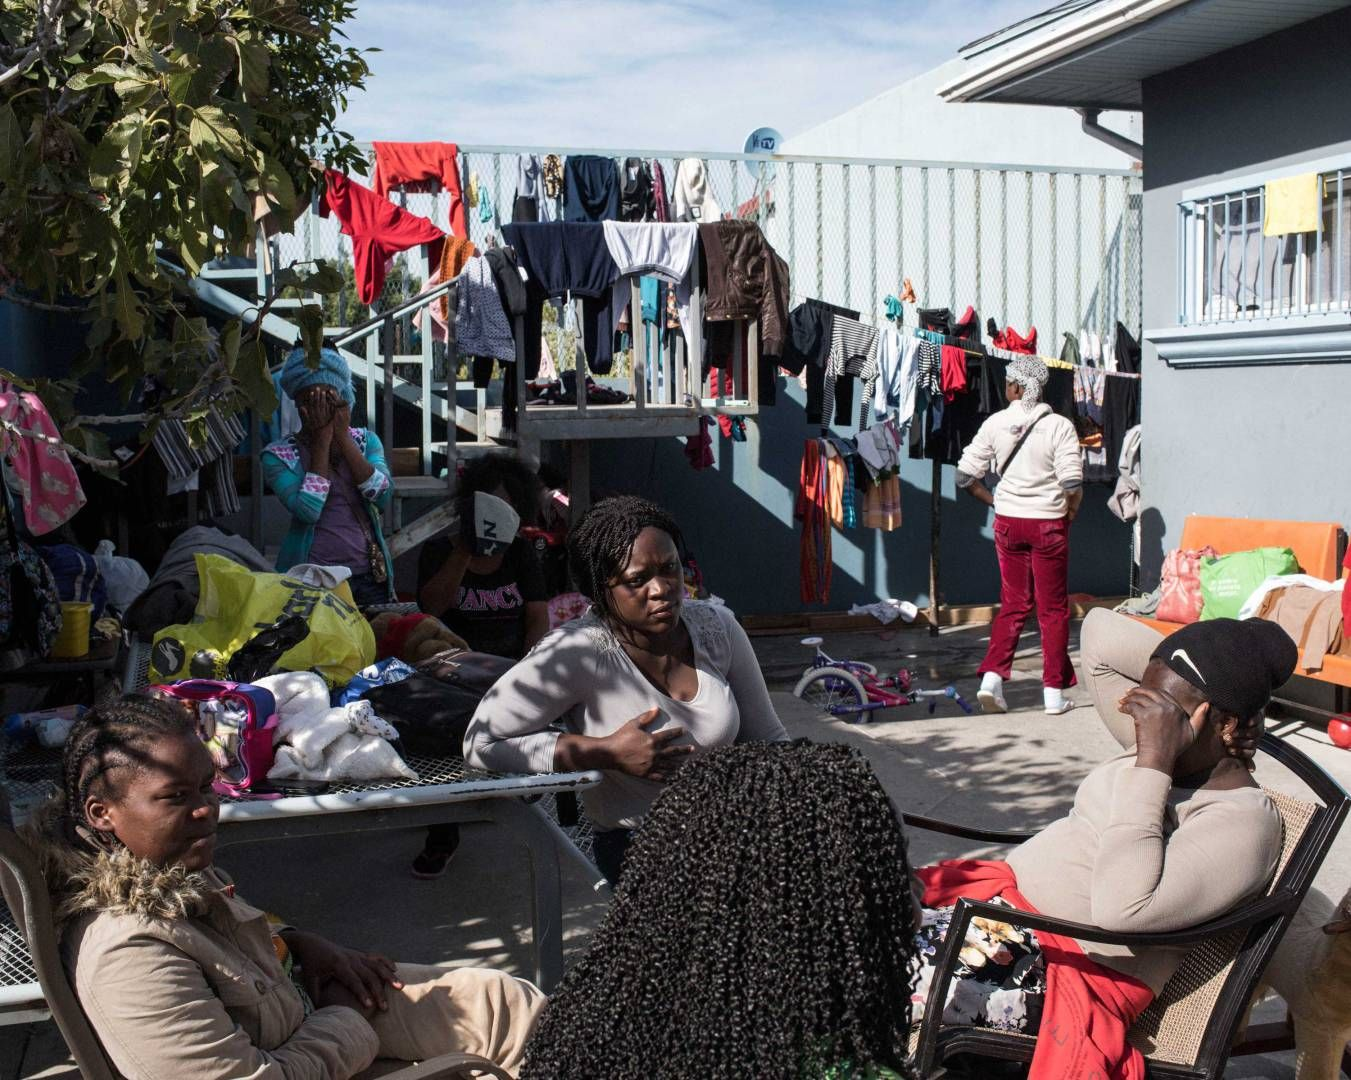 Haitian migrants inside a shelter in downtown Tijuana, Mexico. Dec. 18, 2016.